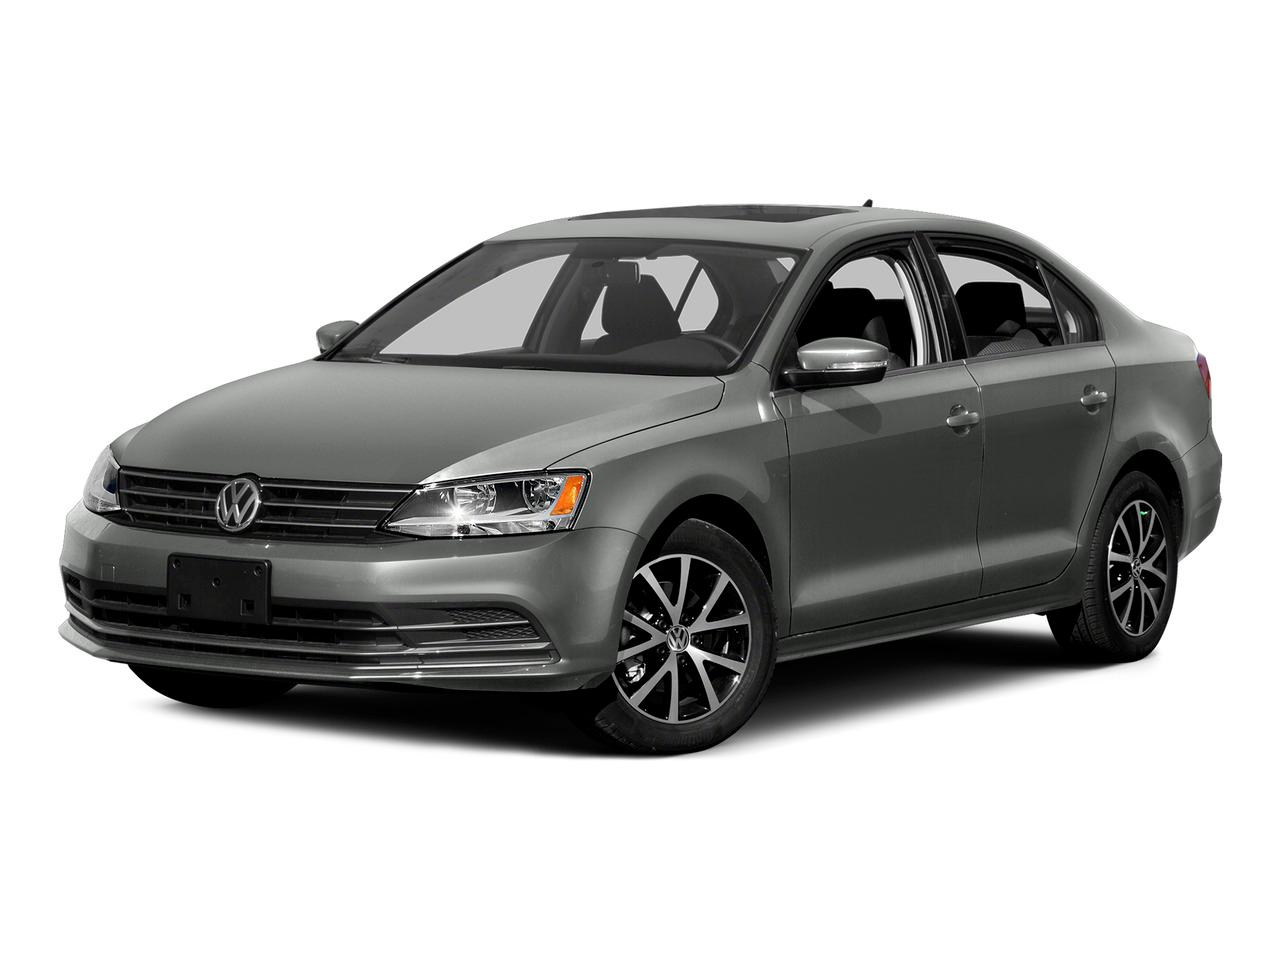 2015 Volkswagen Jetta Sedan Vehicle Photo in Wilmington, NC 28405